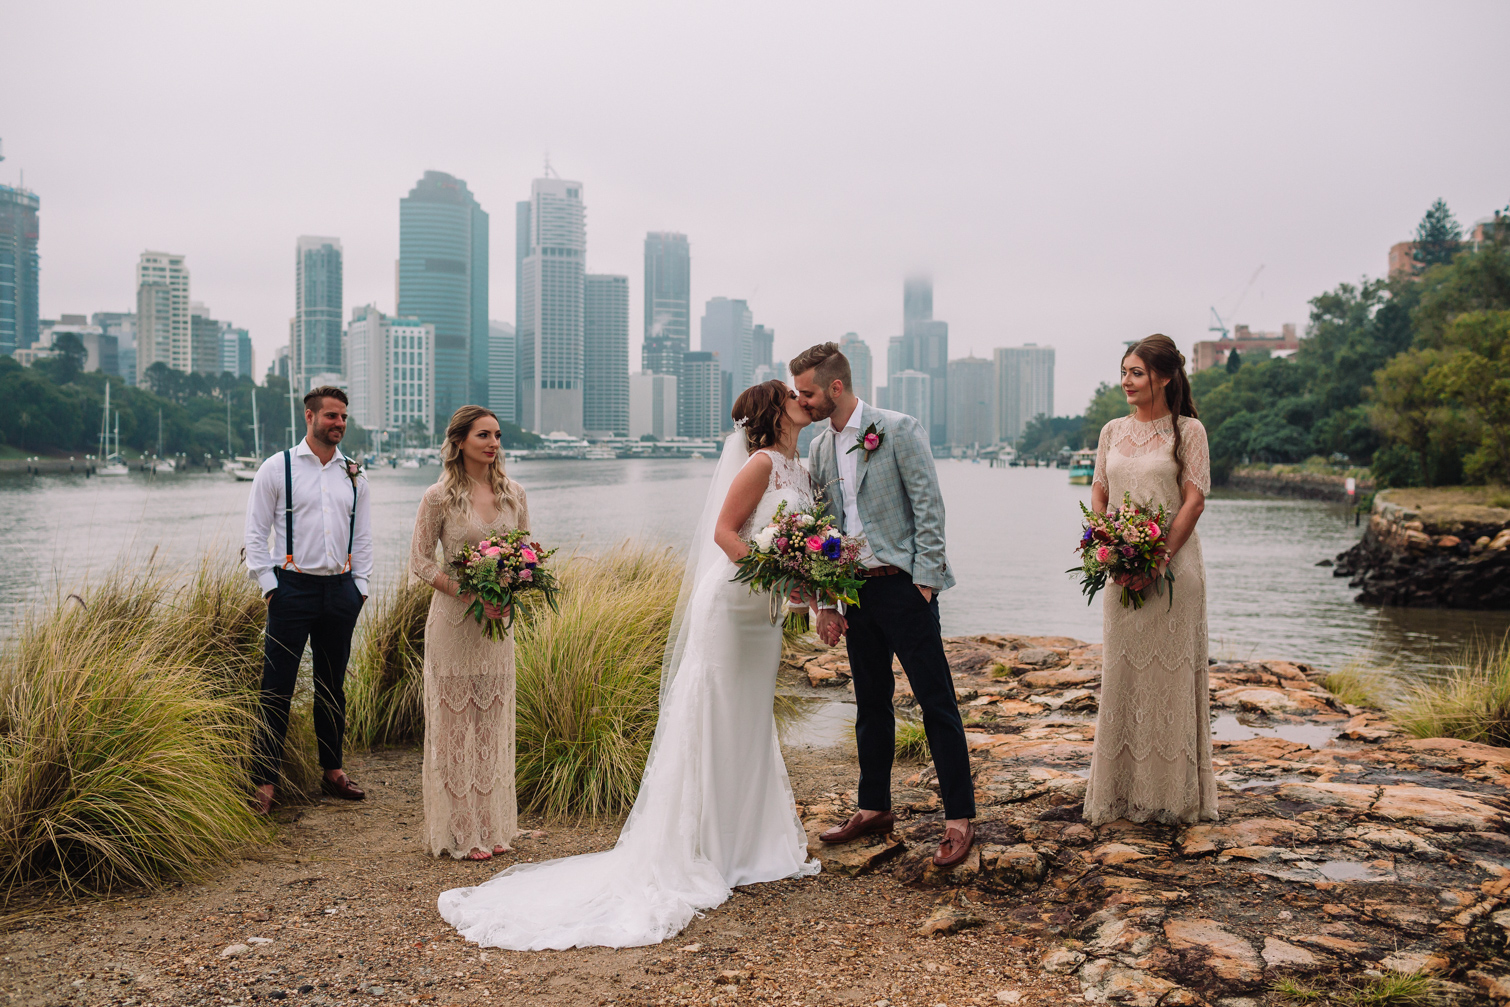 Riverlife_Wedding_Brisbane_Wedding_Photographer-64.jpg